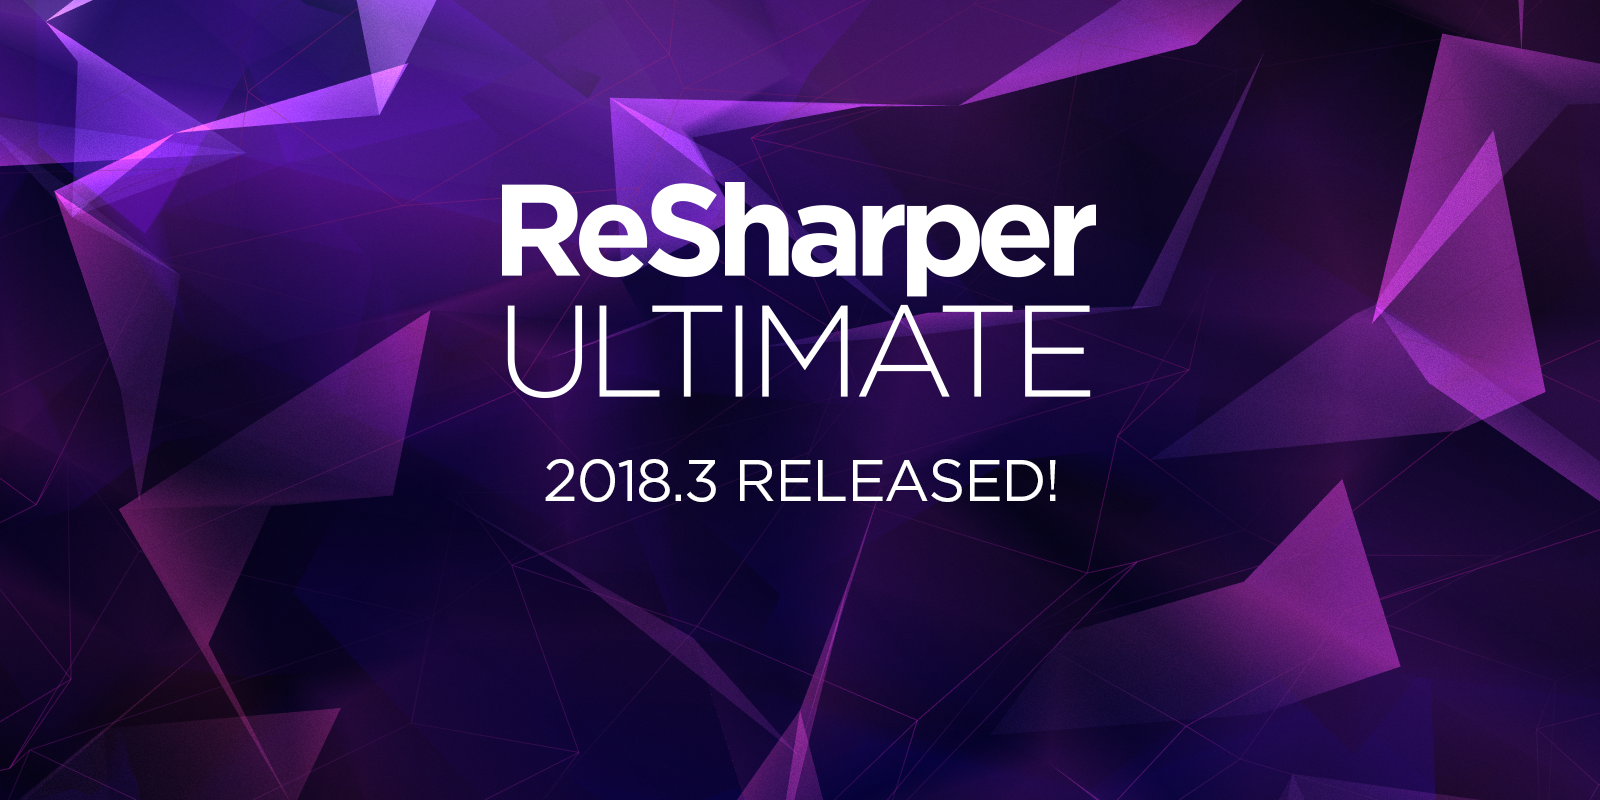 ReSharper Ultimate 2018.3 released